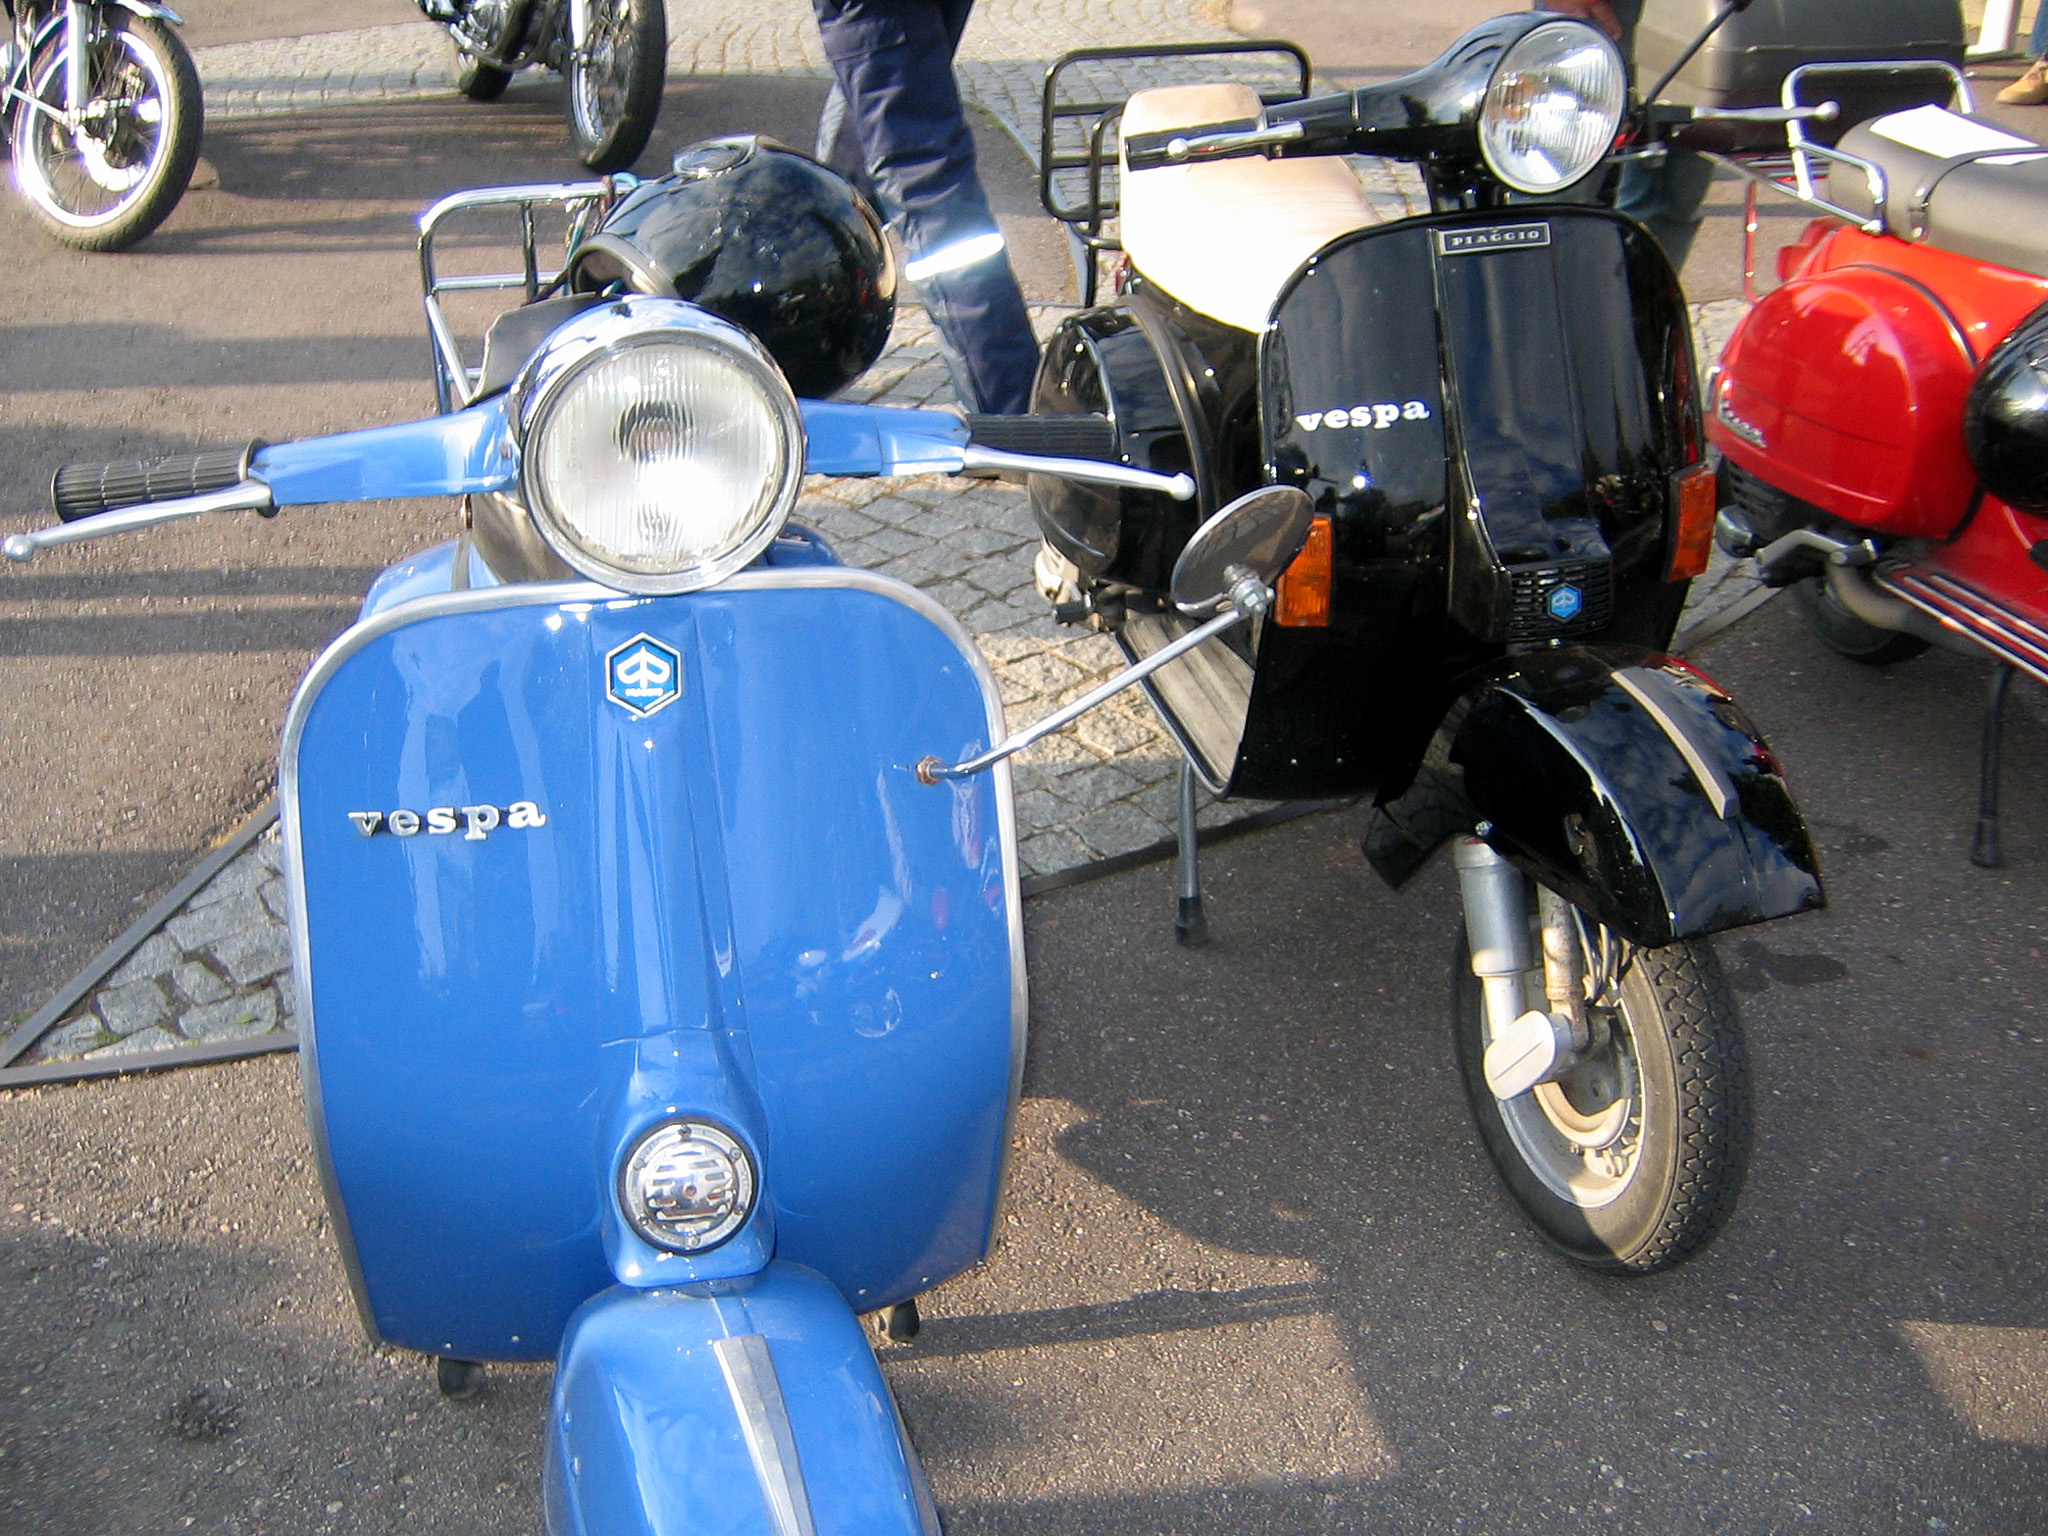 Vespa of Lancaster - Lancaster, PA - Local Business | Facebook